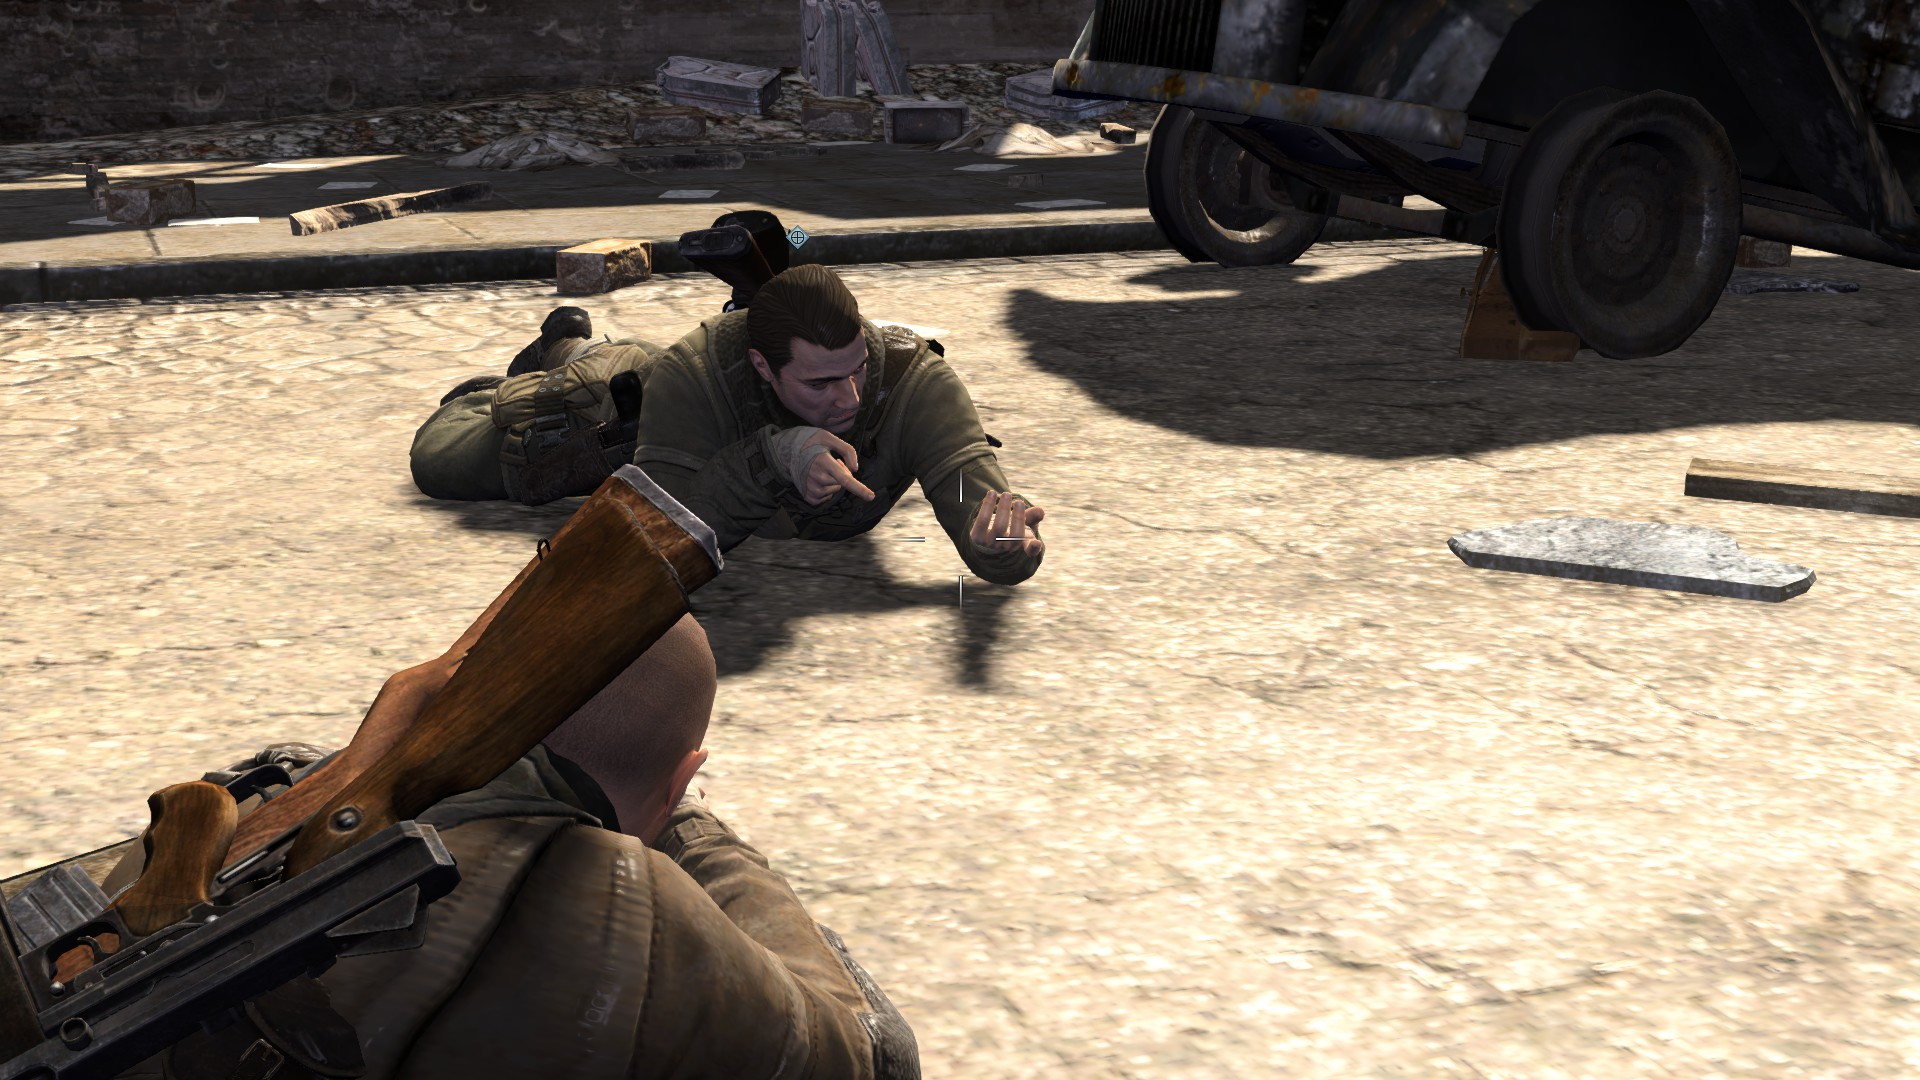 Artistry in Games 2014-07-28_00023 Still Alive! Sniper Elite V2 (PC) Series  v2 sniping sniper respawn Online multiplayer multi-player headshot games game Cooperative Co-op Artistry afrika